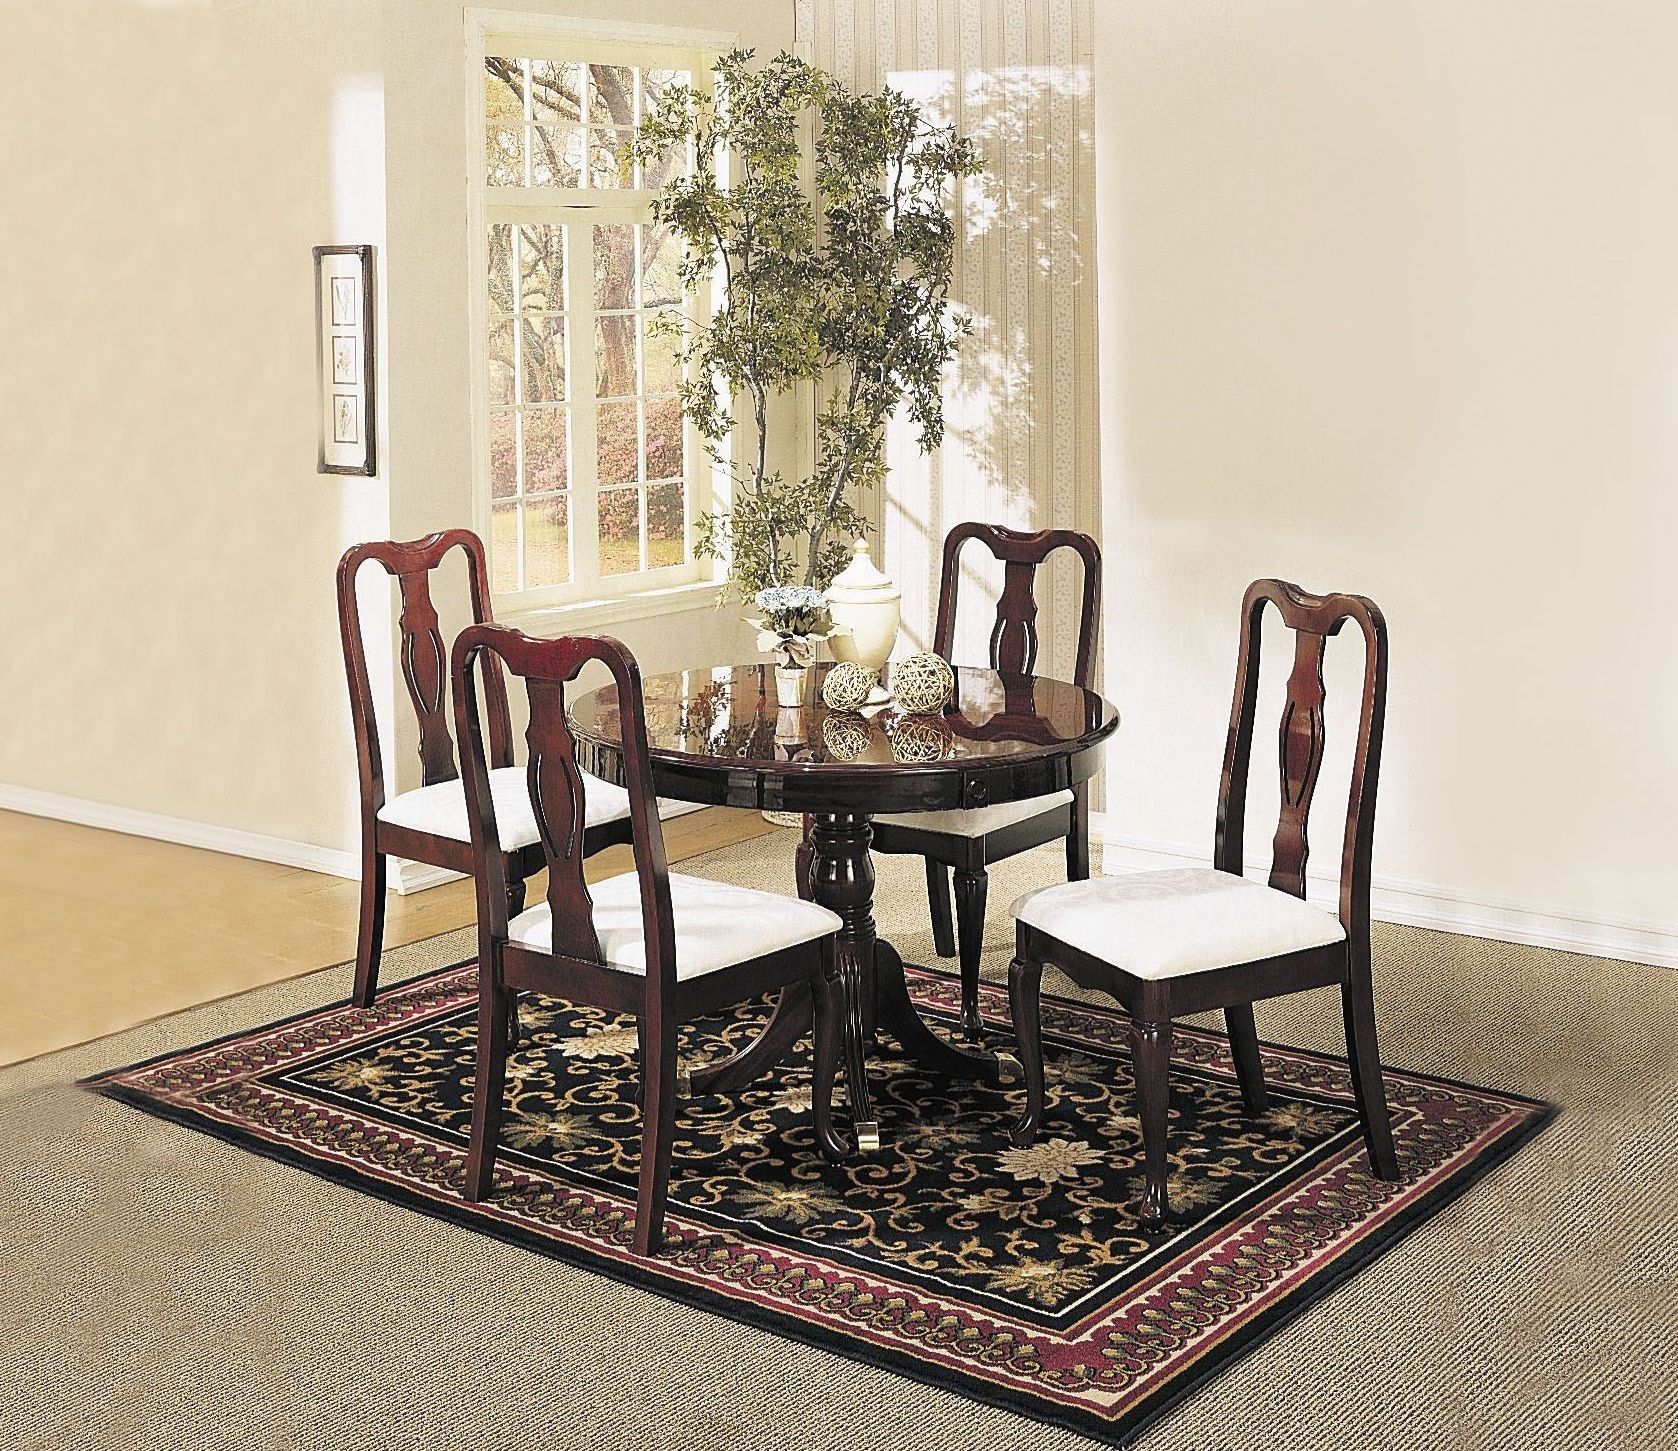 Queen Anne Cherry 5 Piece Round Dining Room Set. ID: ACM 06005. 0.  PreviousNext. X